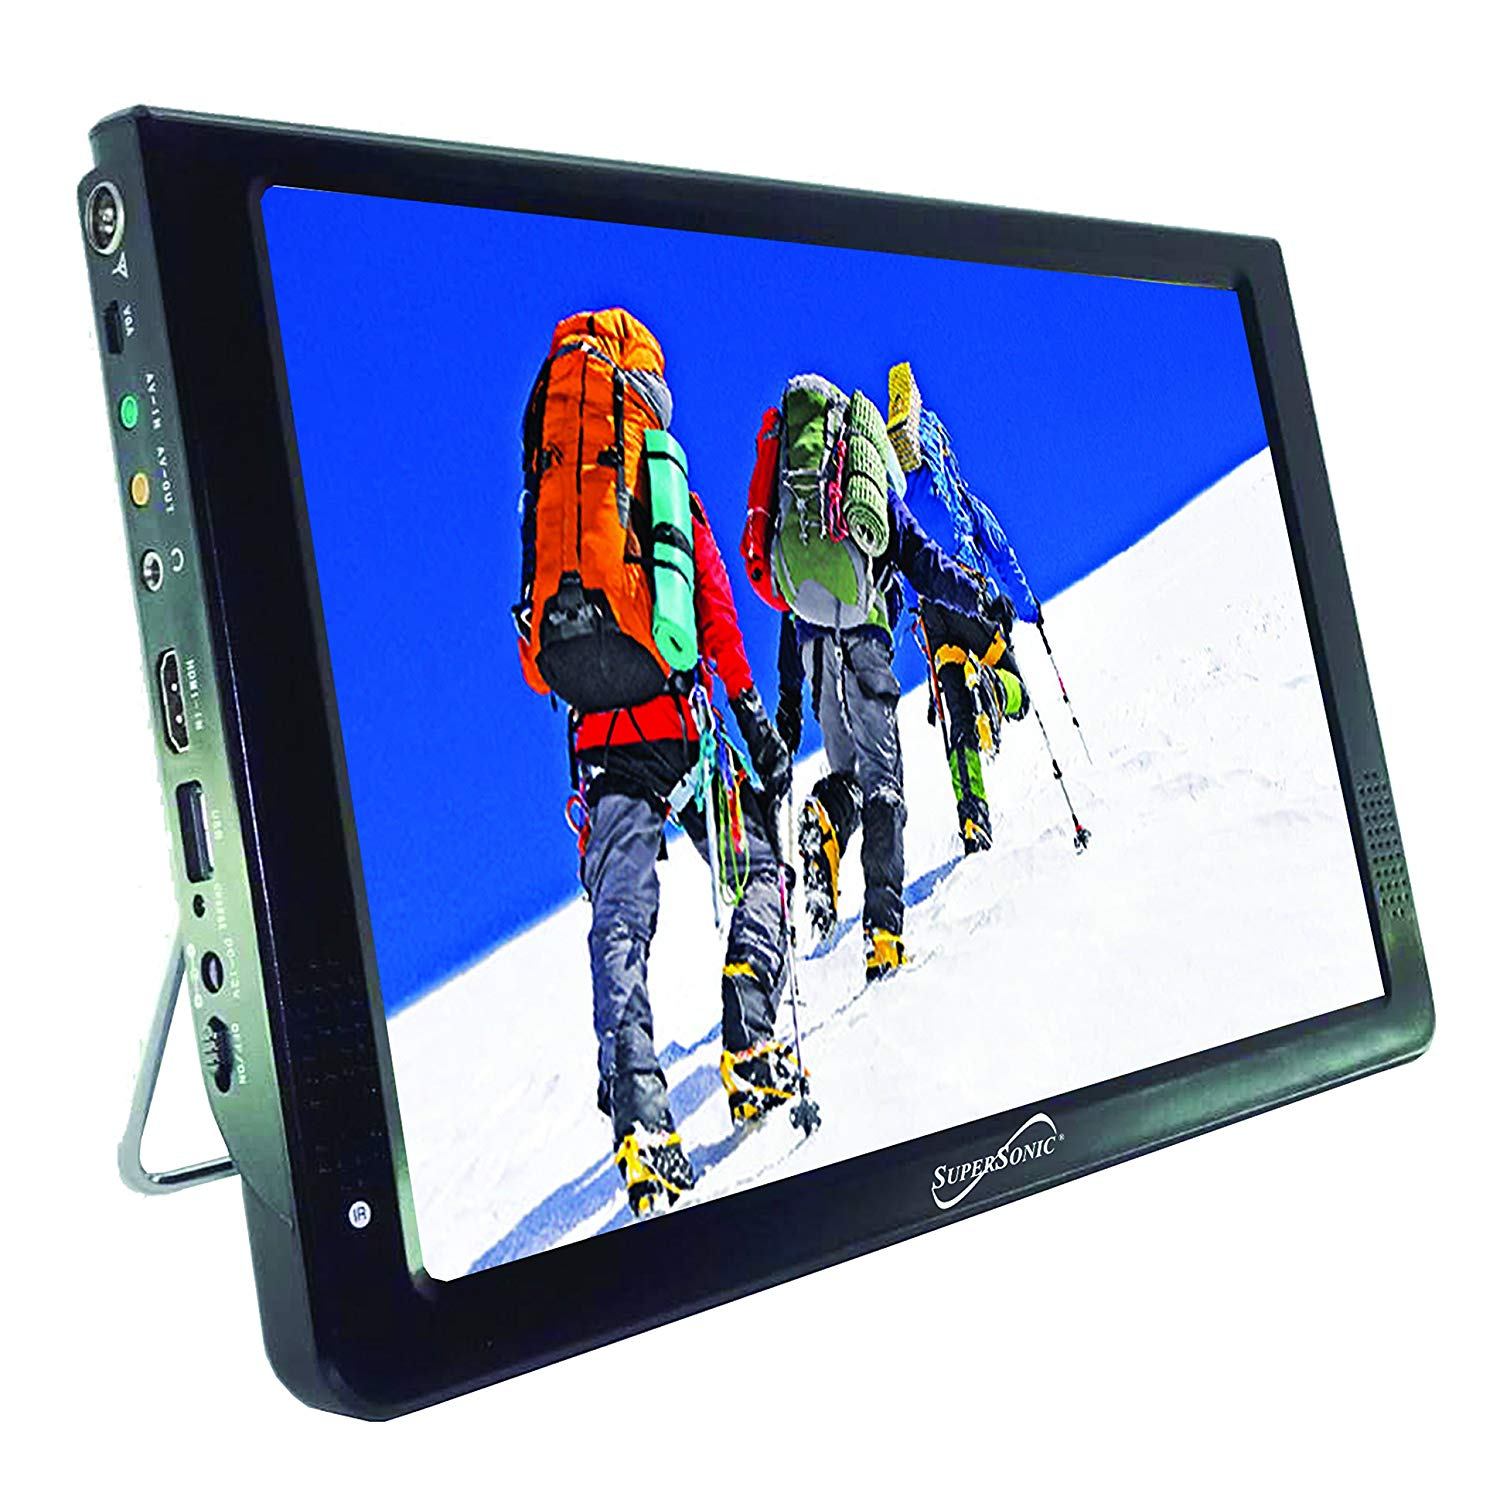 SuperSonic Portable Widescreen LCD Display with Digital TV Tuner, USB/SD Inputs and AC/DC Compatible for RVs, 7-Inch (12-inch)